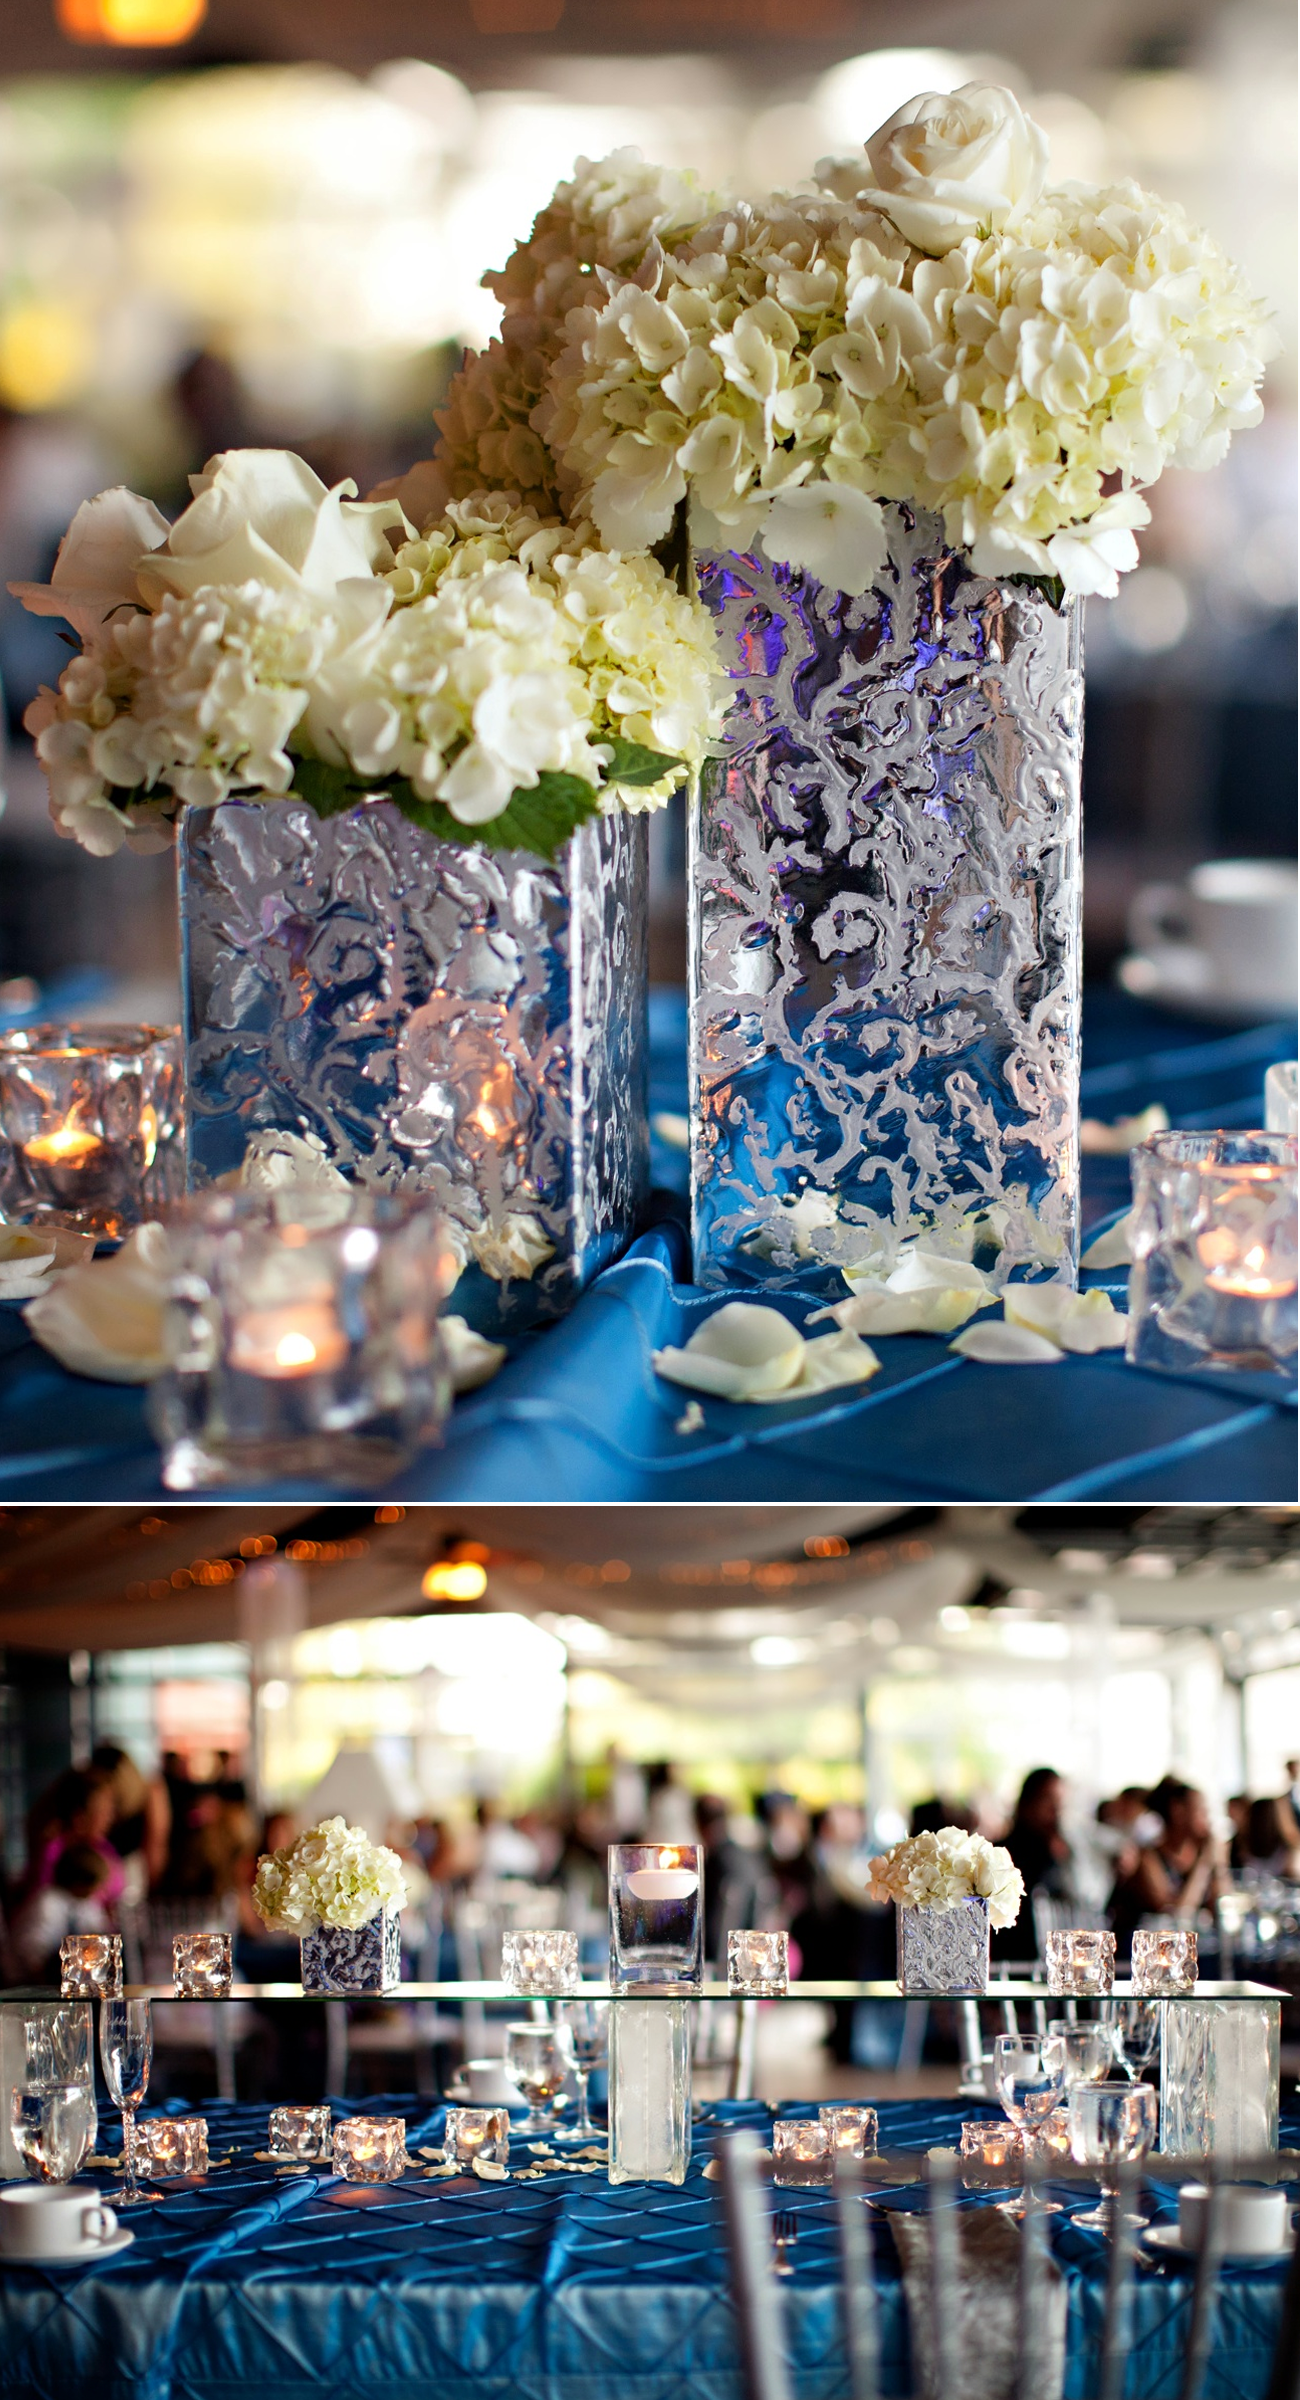 wedding receptions in blue | spring wedding with blue, silver, ivory ...